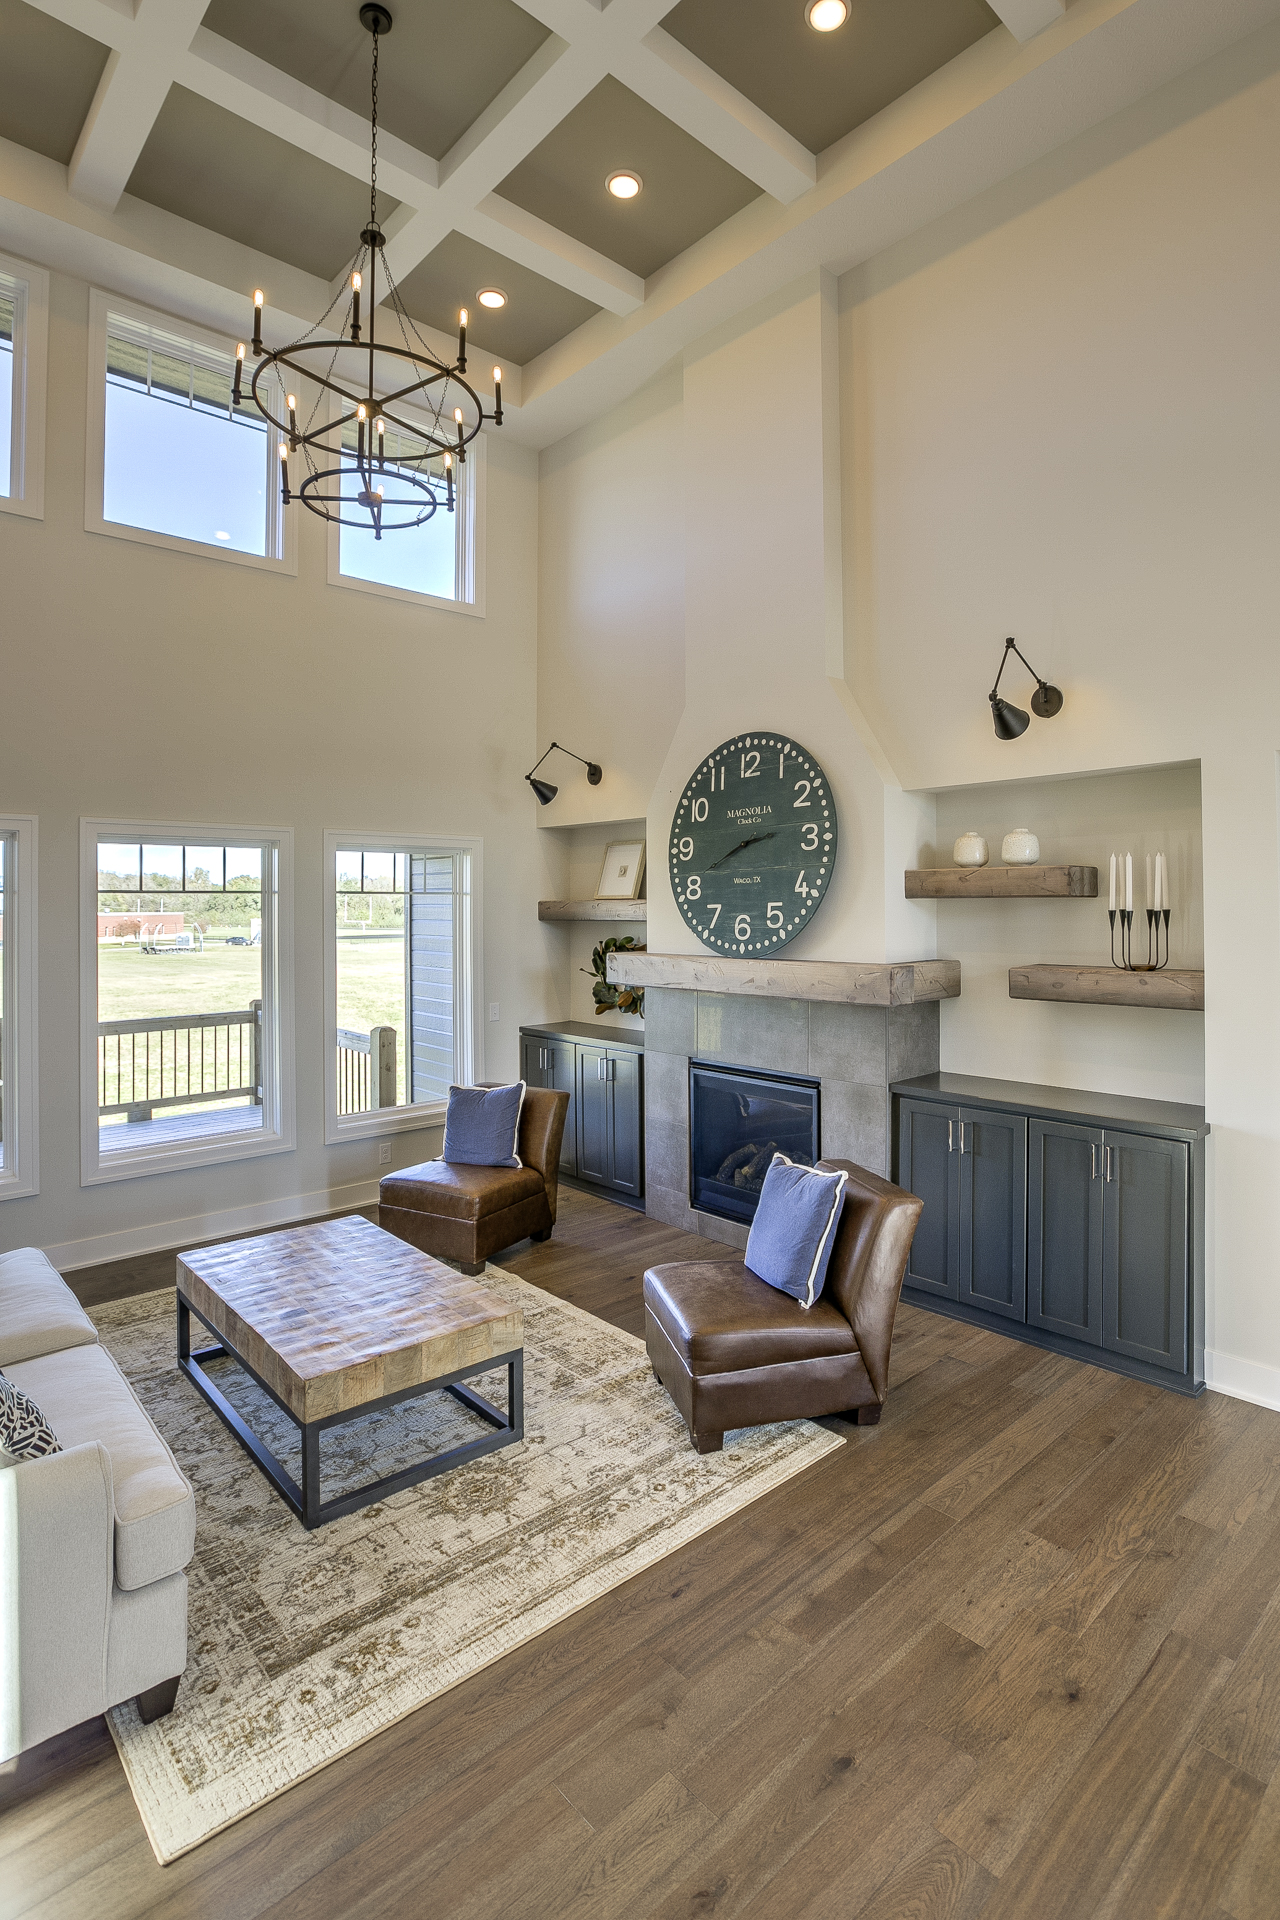 Beautiful living spaces customized for you.